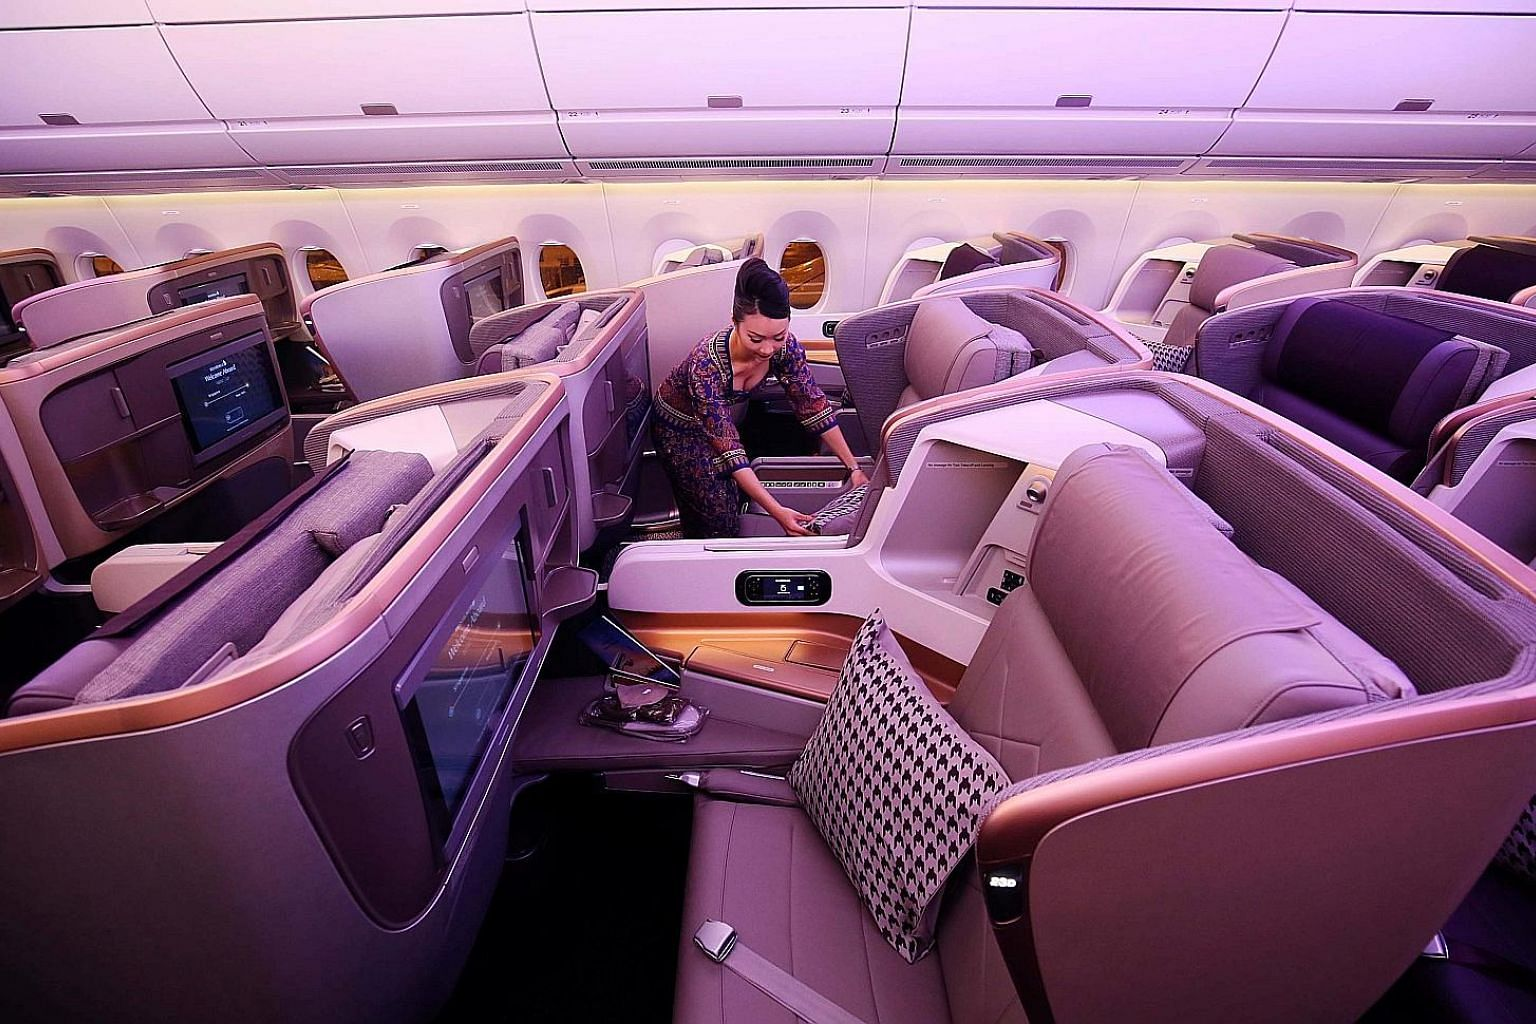 Singapore Airlines' business class seats. Airlines somehow need to keep filling premium seats, or get rid of them. According to one expert, a single business class seat needs to generate at least four times the profit of an economy seat to justify al